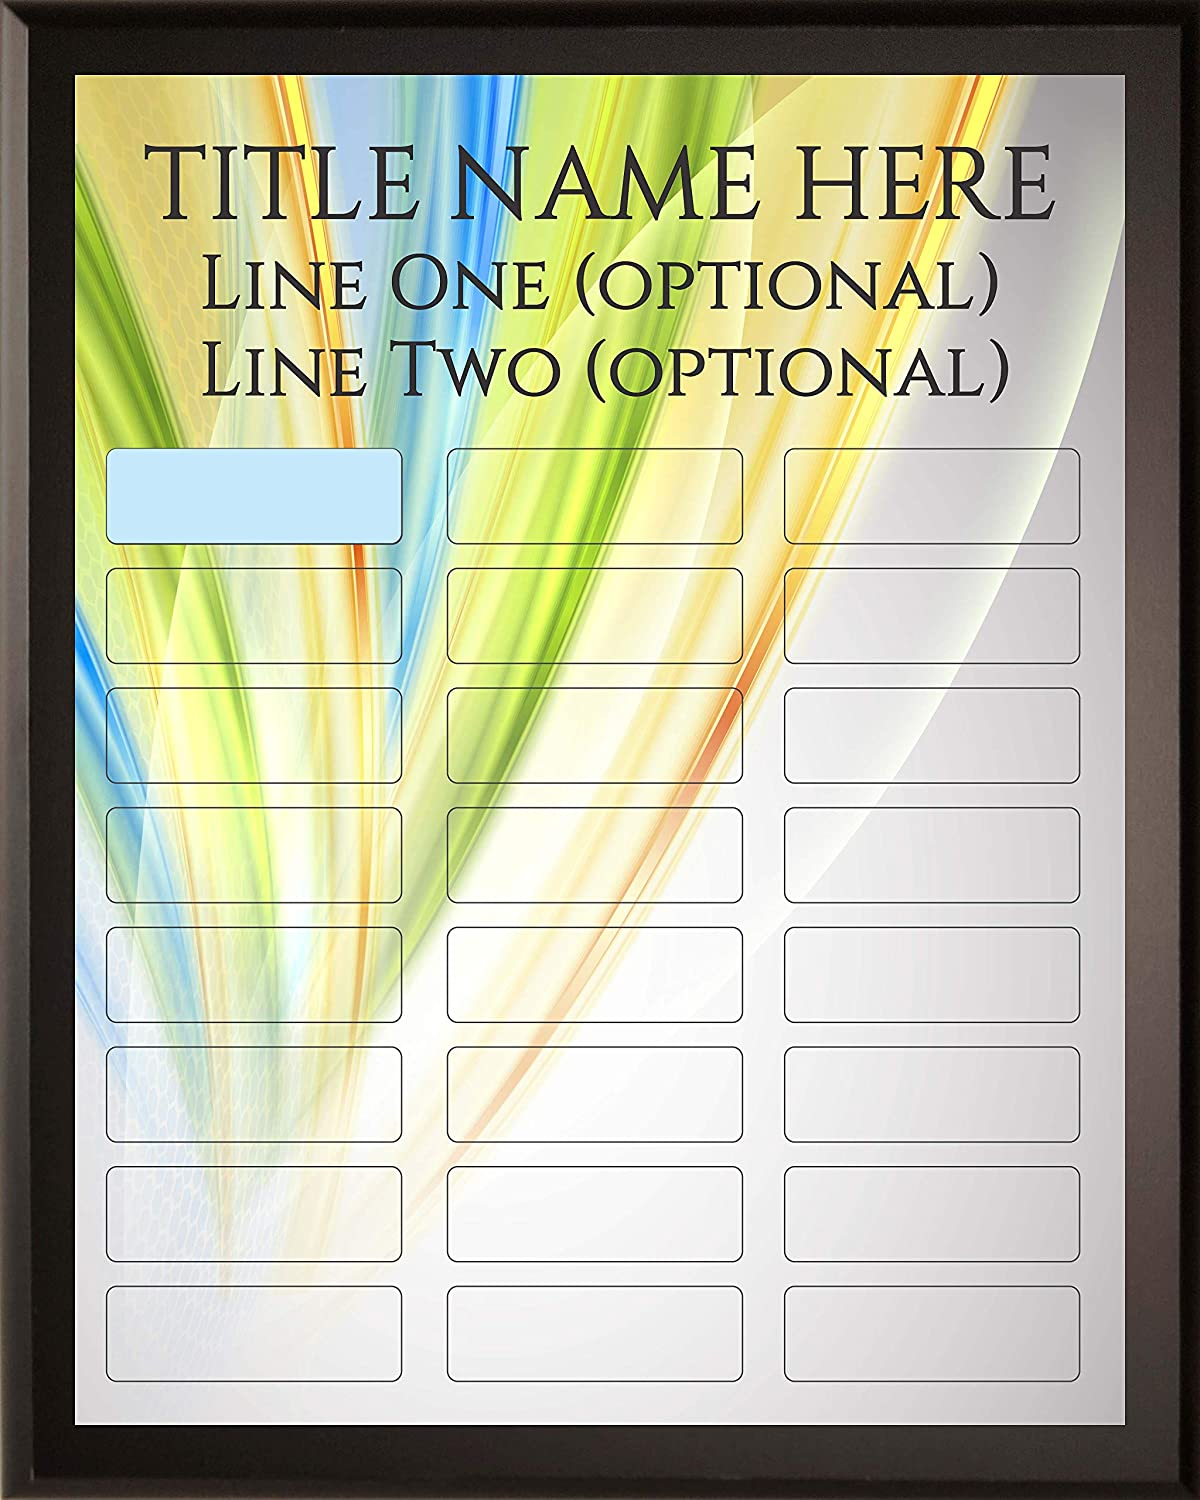 Employee of The Month DIY Perpetual Colored Leaves Plaque Magic Recognition Award Kit - 24 Plate Model - Fully Customizable - Salesperson of The Month - No Engraving Needed Do It Yourself